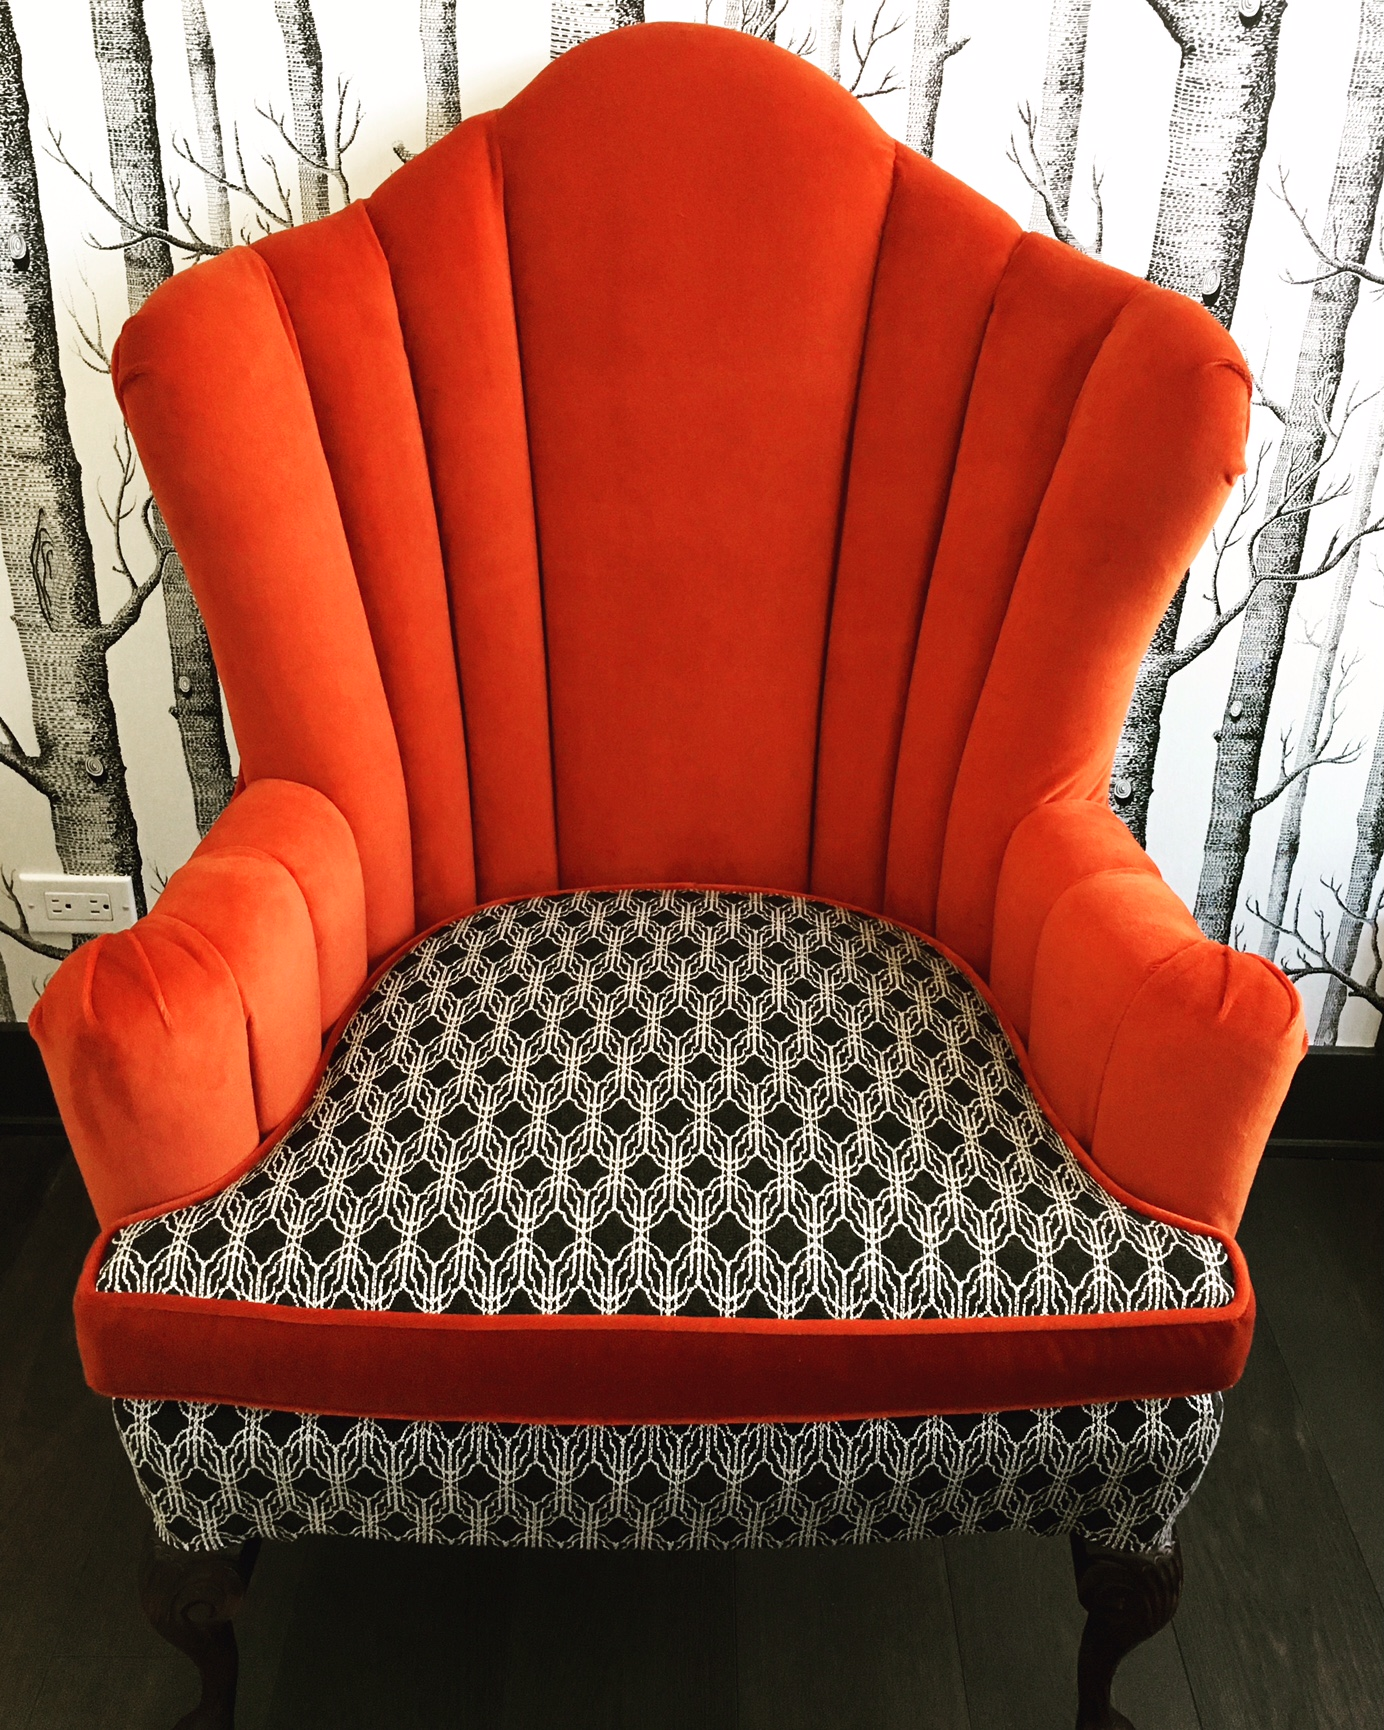 Recovered Interior Red Channel Tufted Chair